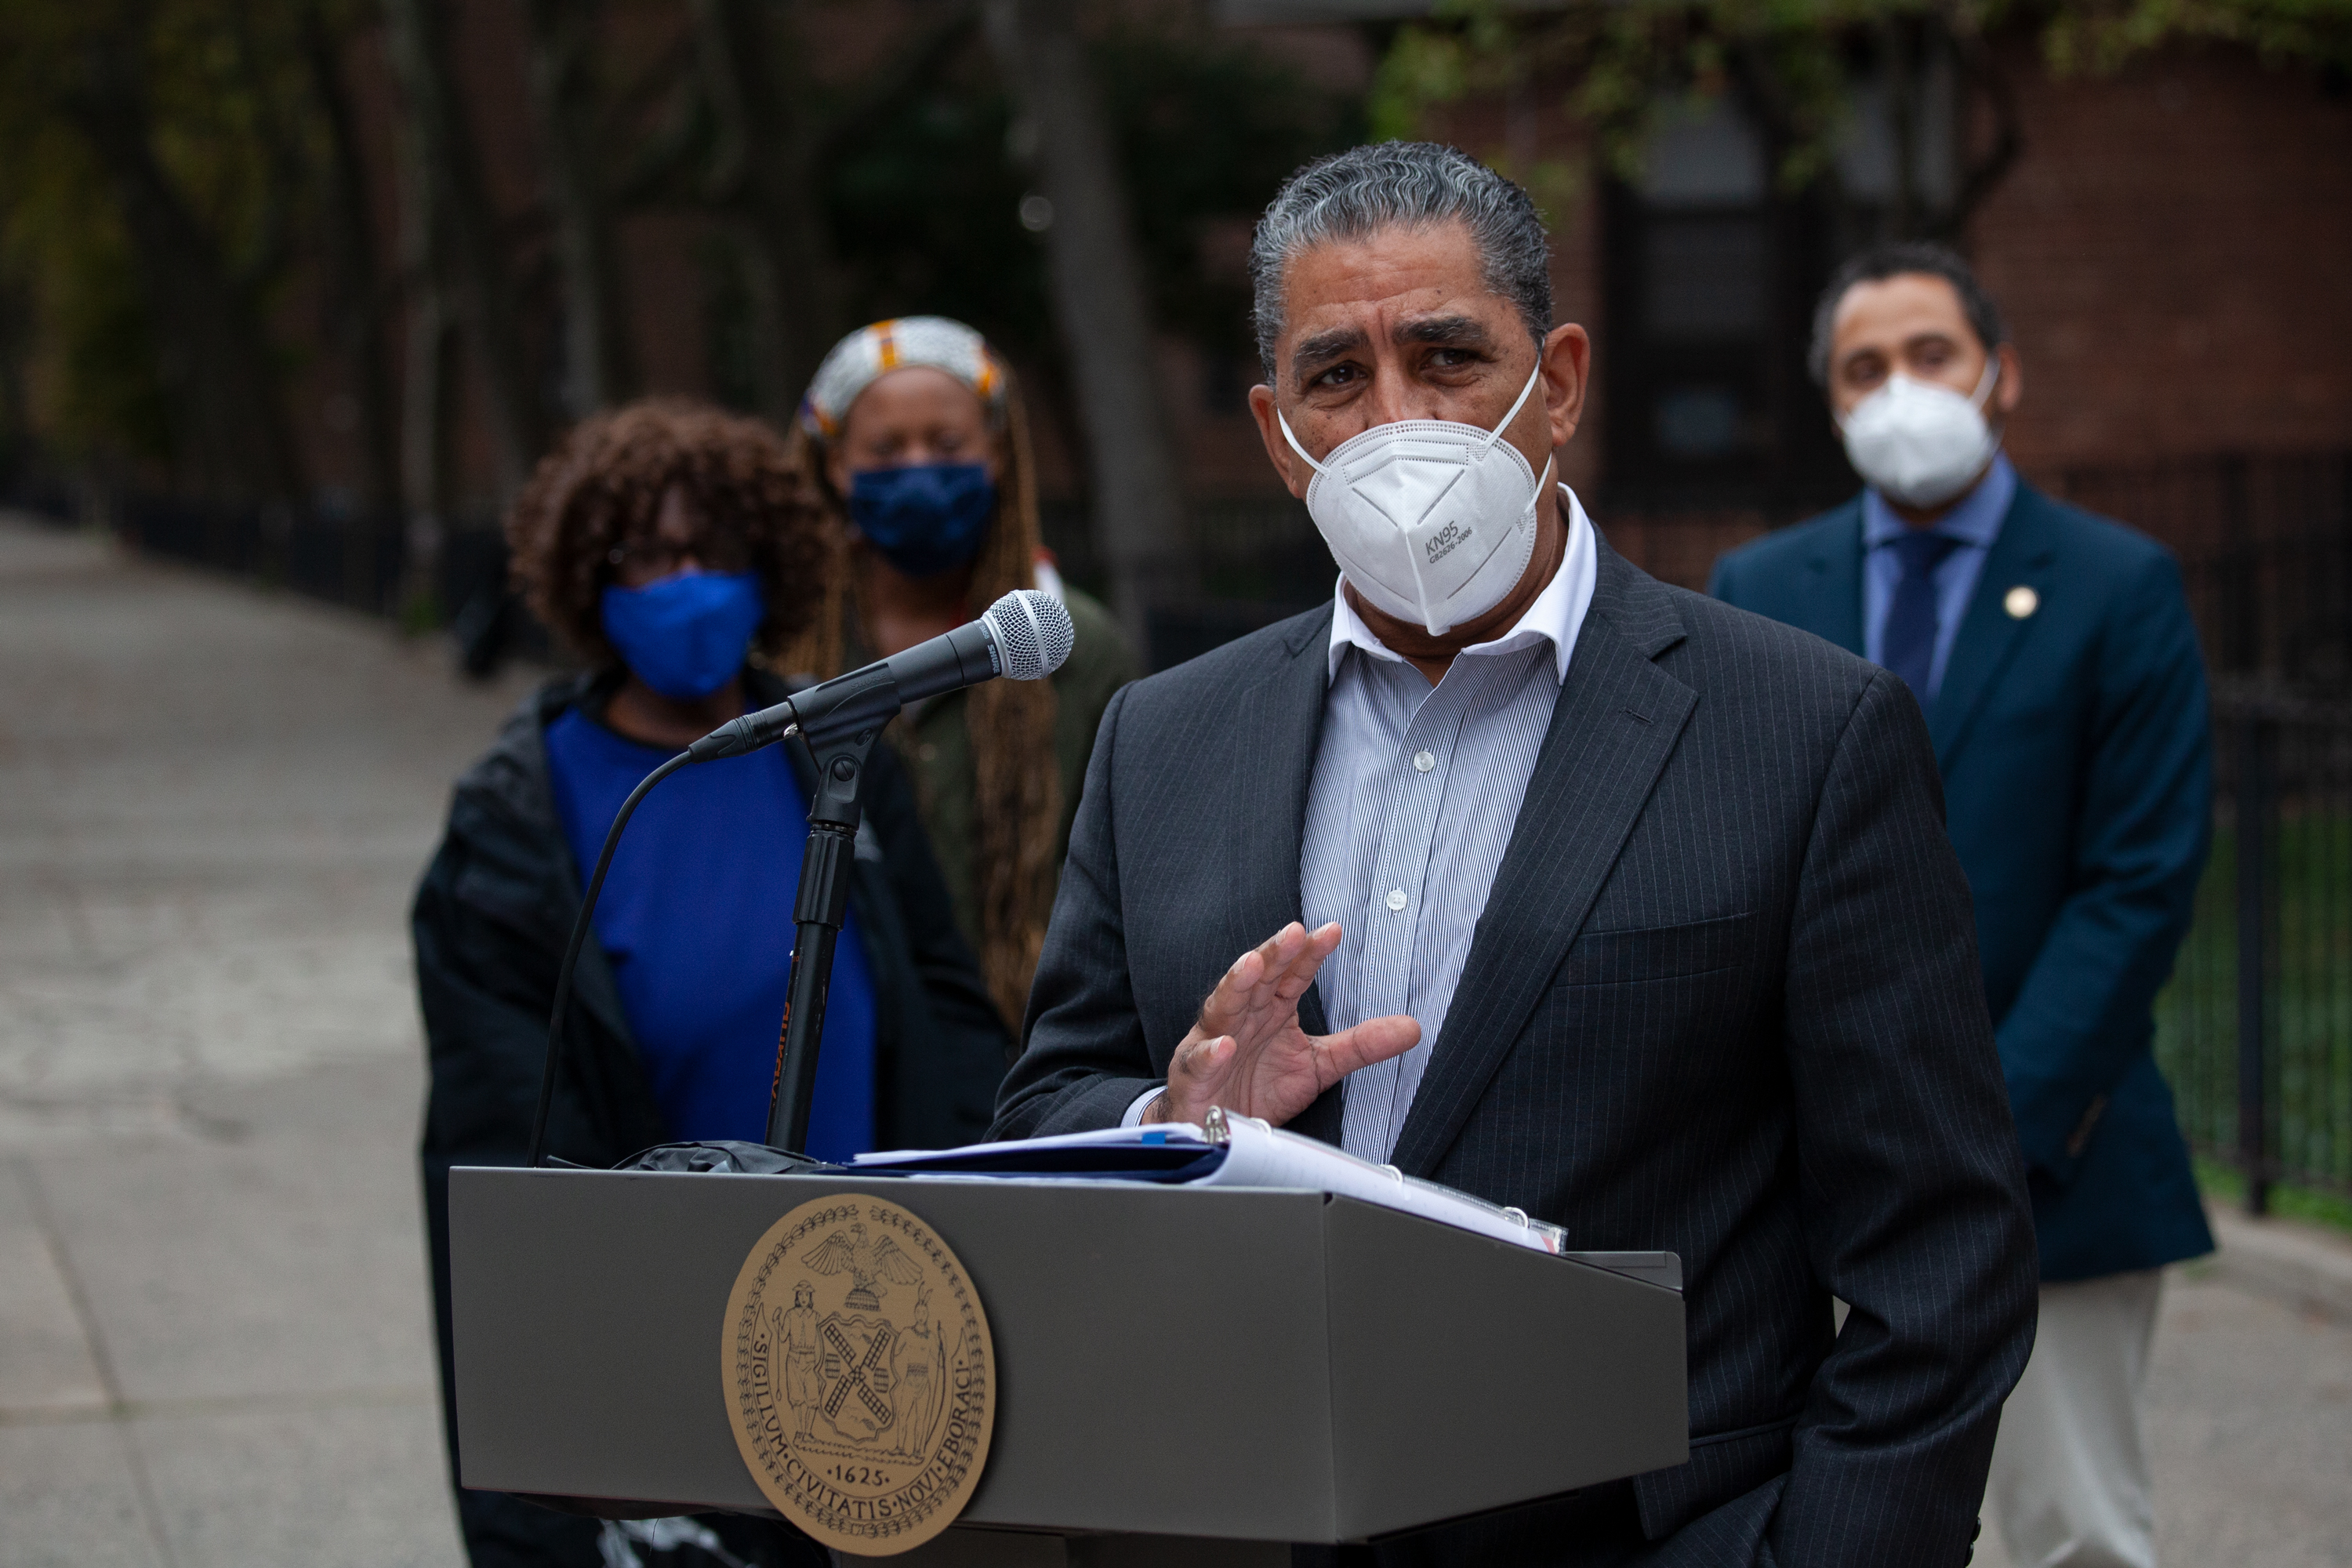 Congressional Rep. Adriano Espaillat speaks about funding for NYCHA outside the Martin Luther King Jr. Towers in Harlem. Oct. 26, 2020.